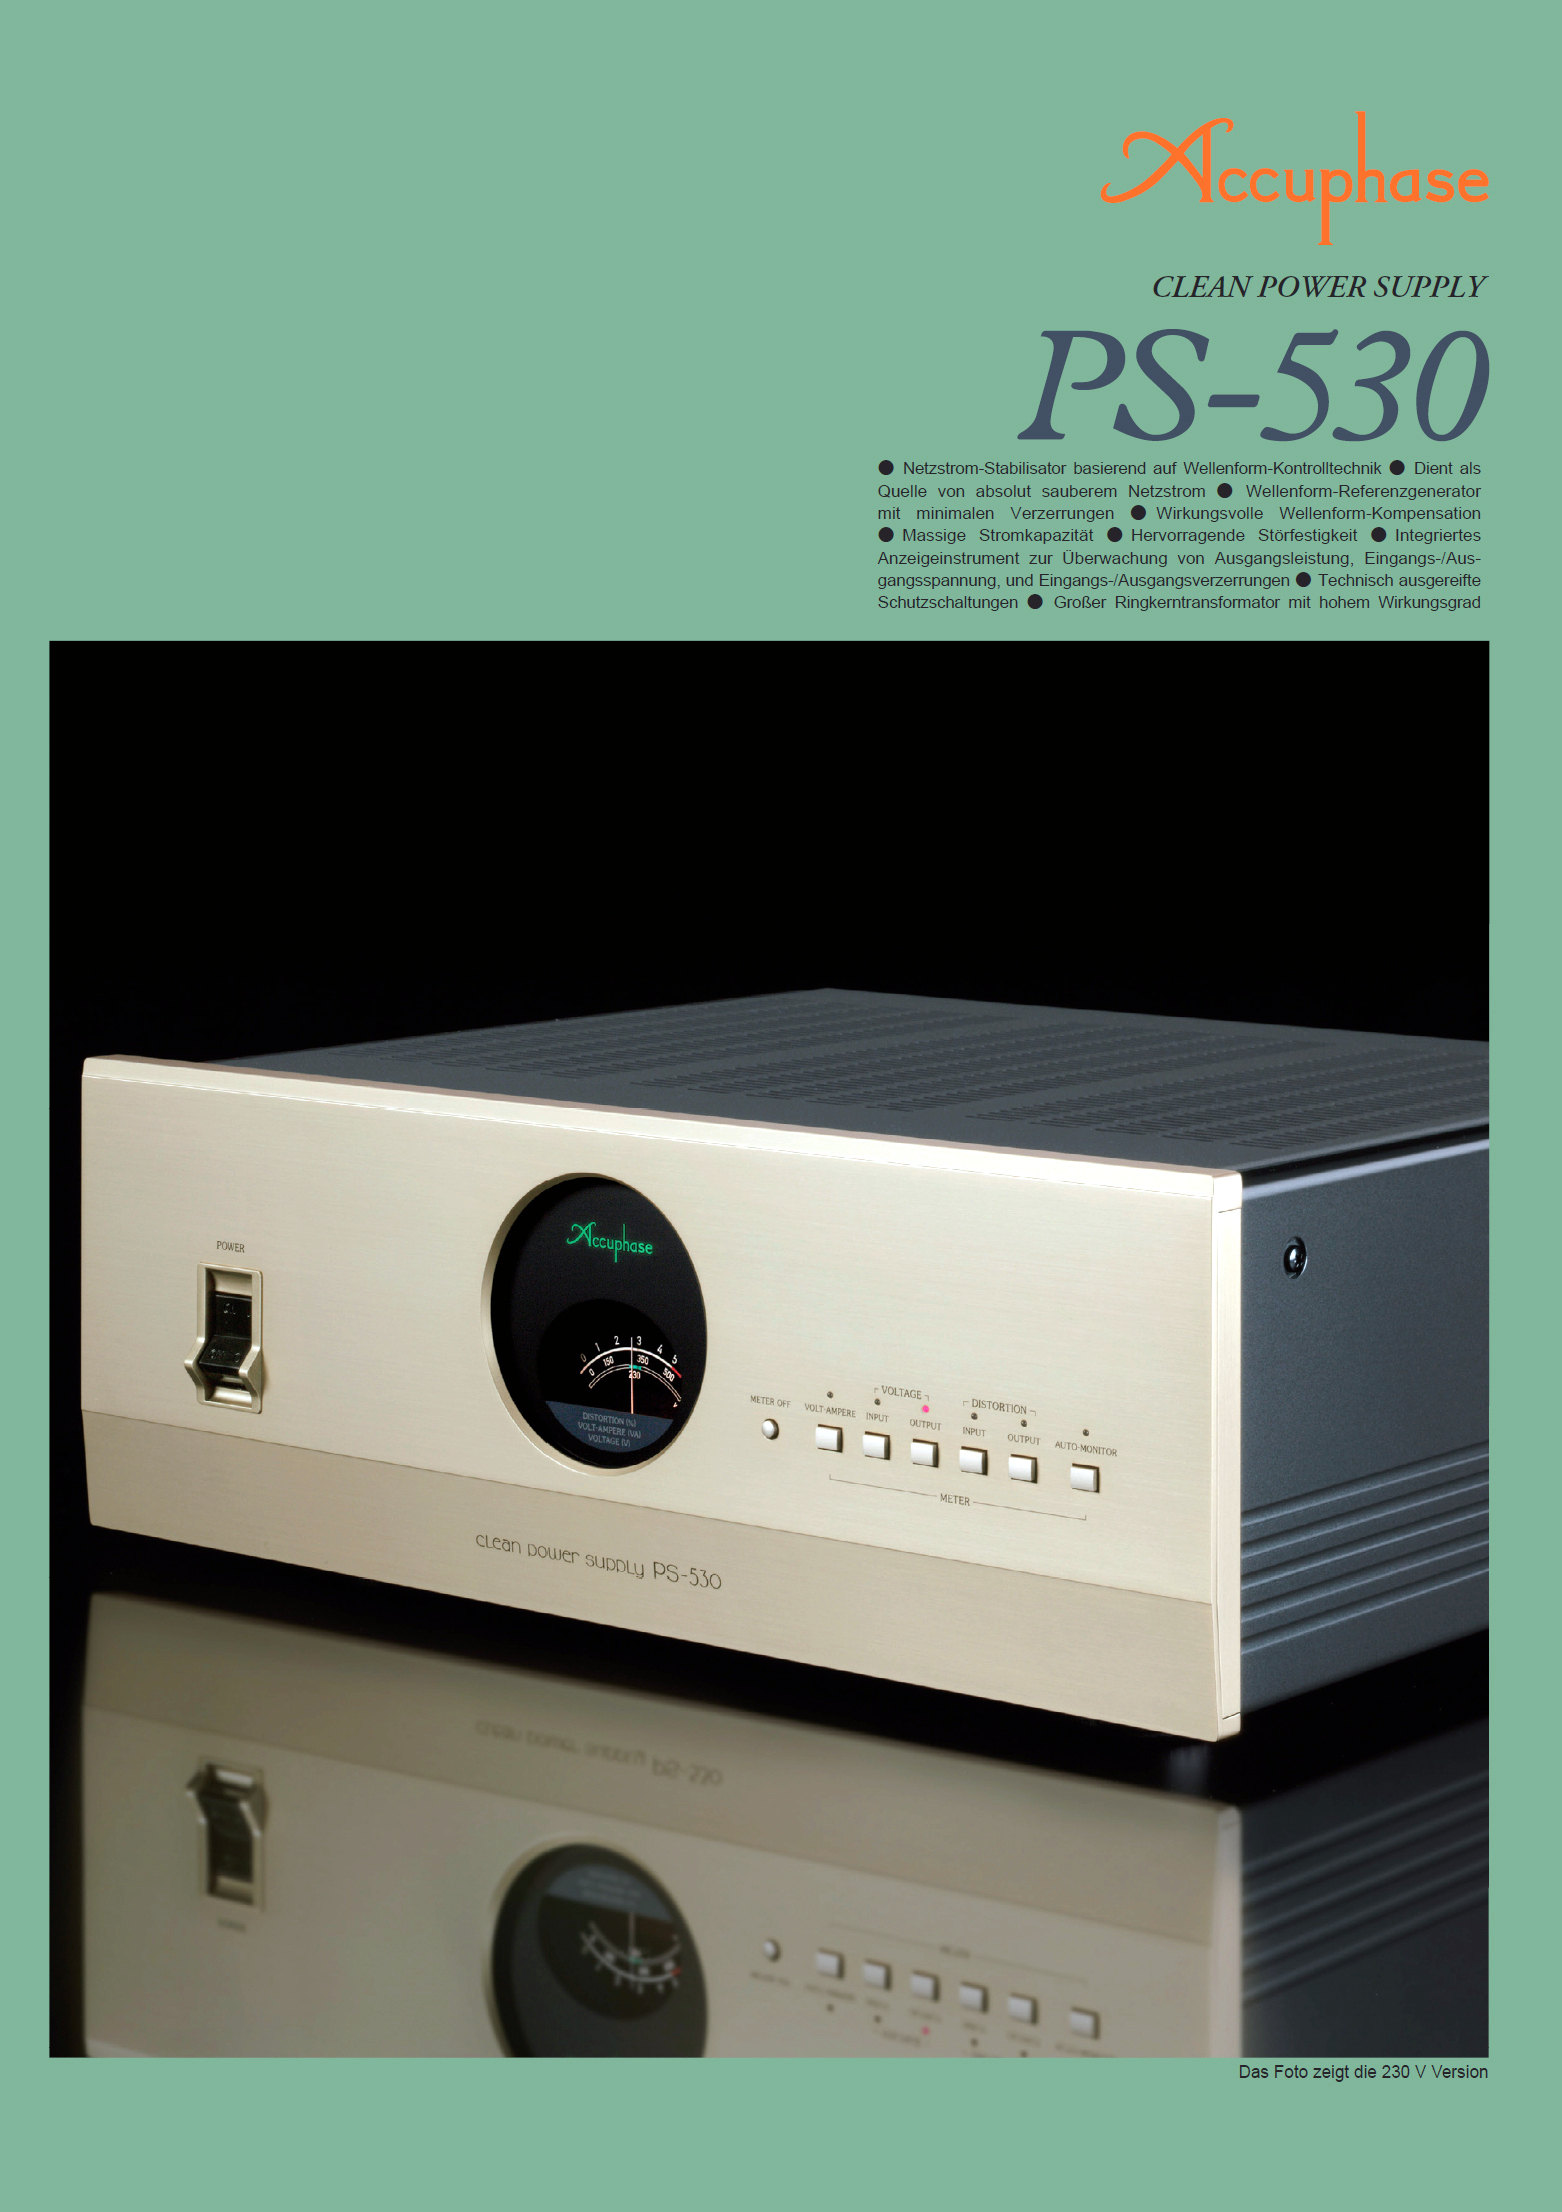 Accuphase PS-530-Prospekt-1.jpg